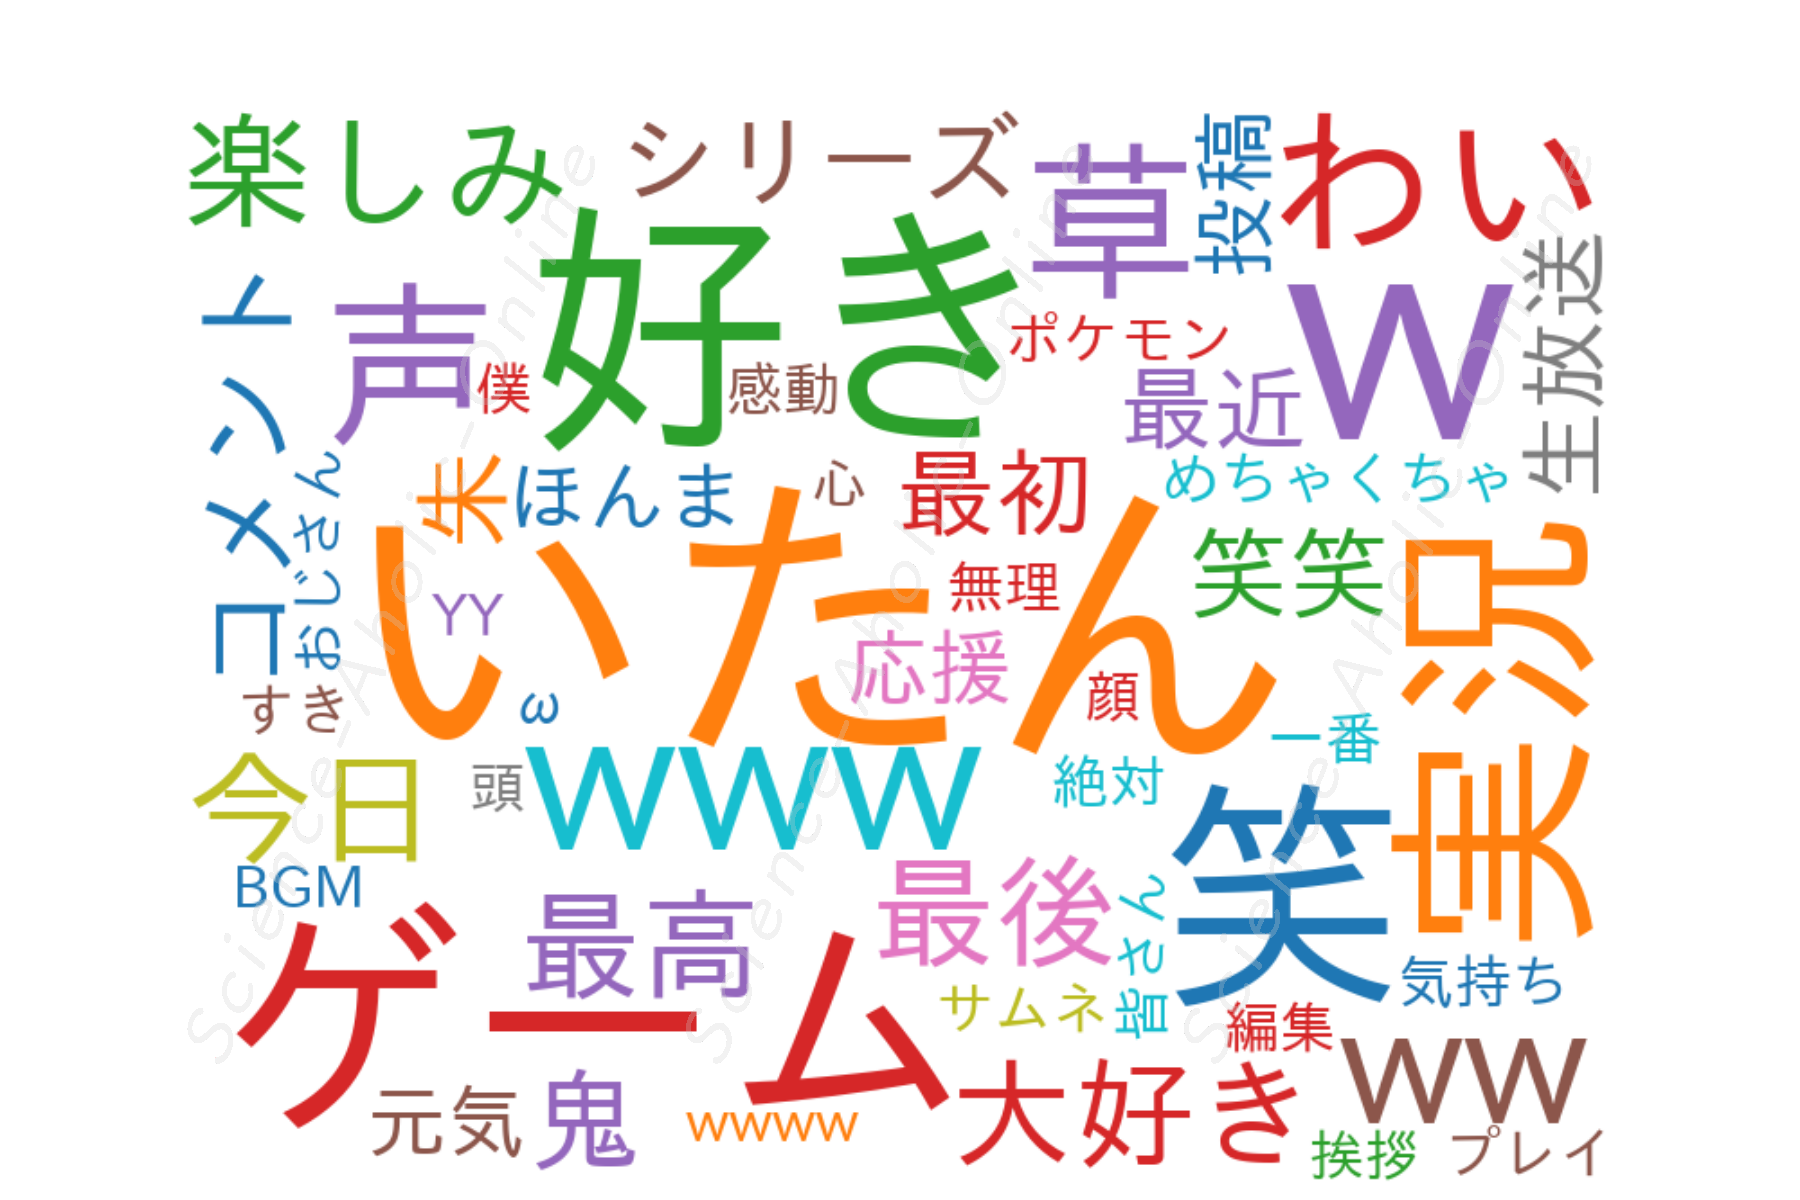 https://science-aholic-online.com/wp-content/uploads/2020/08/wordcloud_わいわいのゲーム実況チャンネル.png